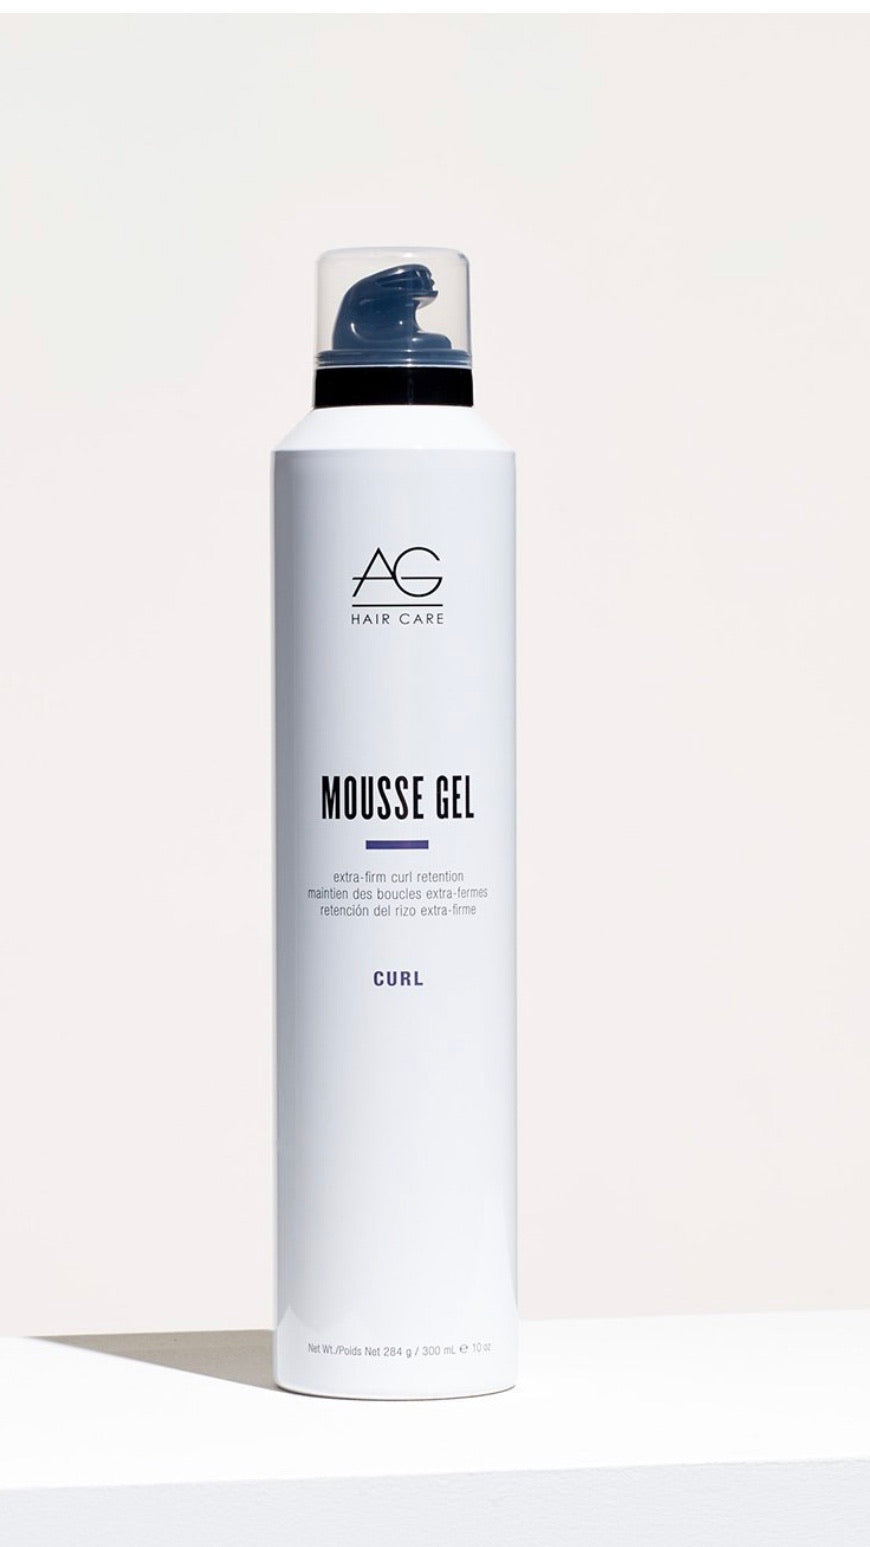 AG Hair Care Mousse Gel Extra-Firm Curl Retention Curl